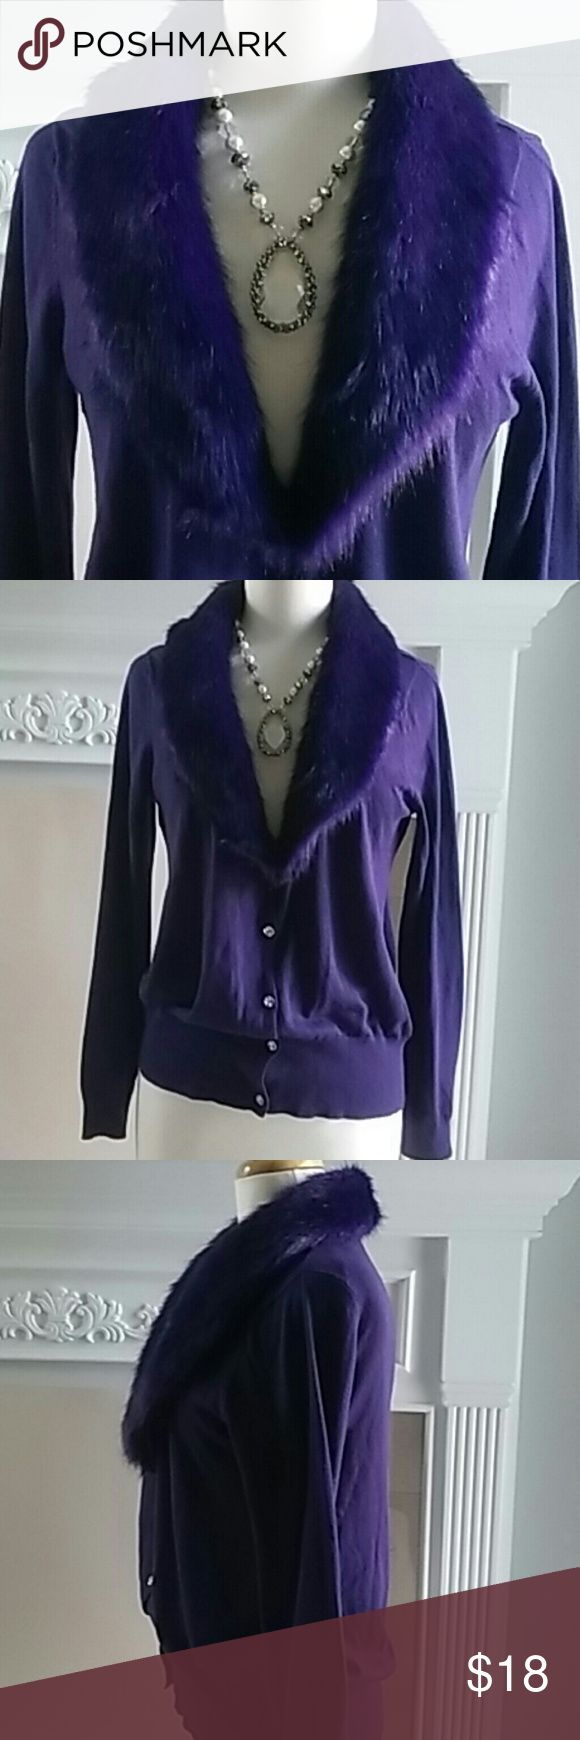 ROZ & ALI PURPLE SWEATET FAUW FUR COLLAR S. L ROZ & ALI ROYAL PURPLE SWEATER WITH LAVISH FAUX FUR COLLAR & BUTTONS THAT SPARKLE LIKE DIAMONDS. COTTON ACRYLIC BLEND. WORN A FEW TIMES BUT STILL IN GREAT CONDITION. PERFECT FOR THE HOLIDAY SEASON. SIZE. LARGE Roz & Ali Sweaters Cardigans